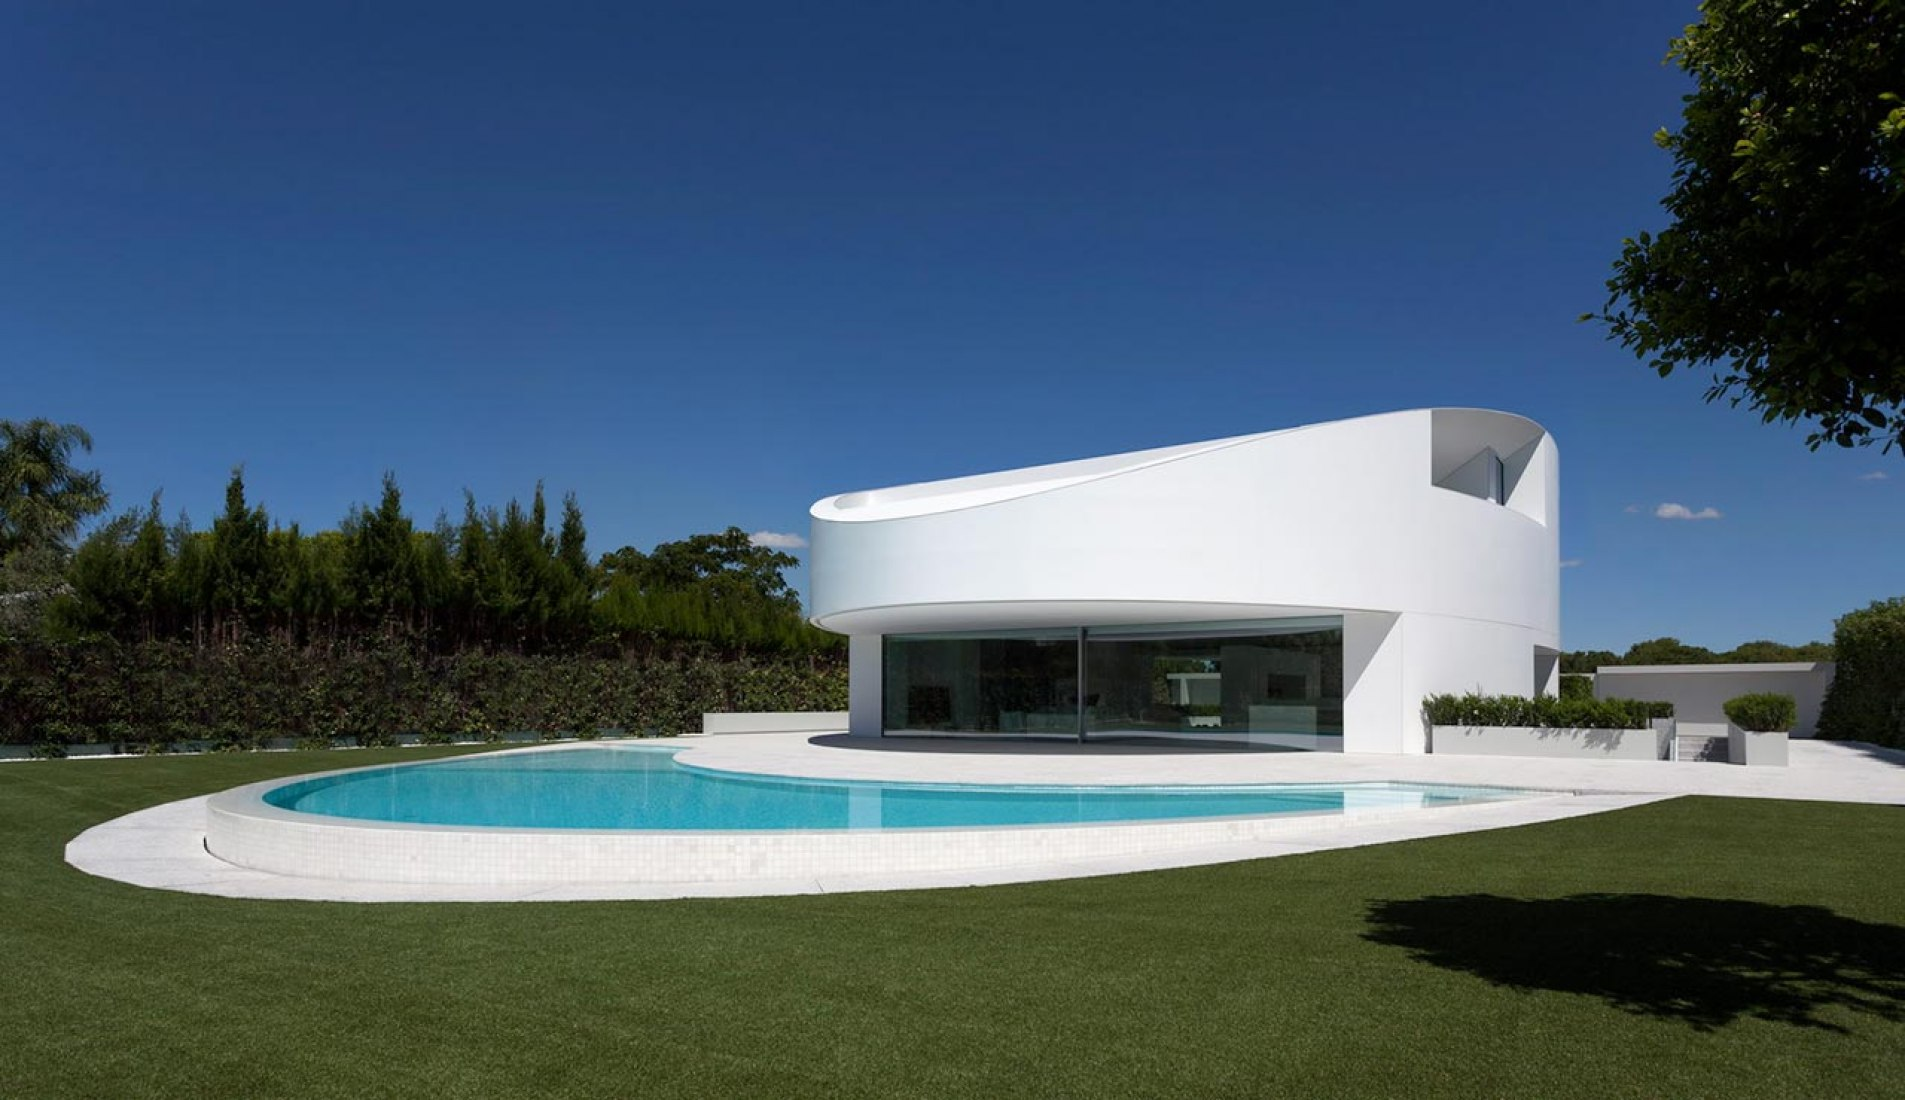 Outside vision. Casa Balint by Fran Silvestre Arquitectos. Photography © Diego Opazo.